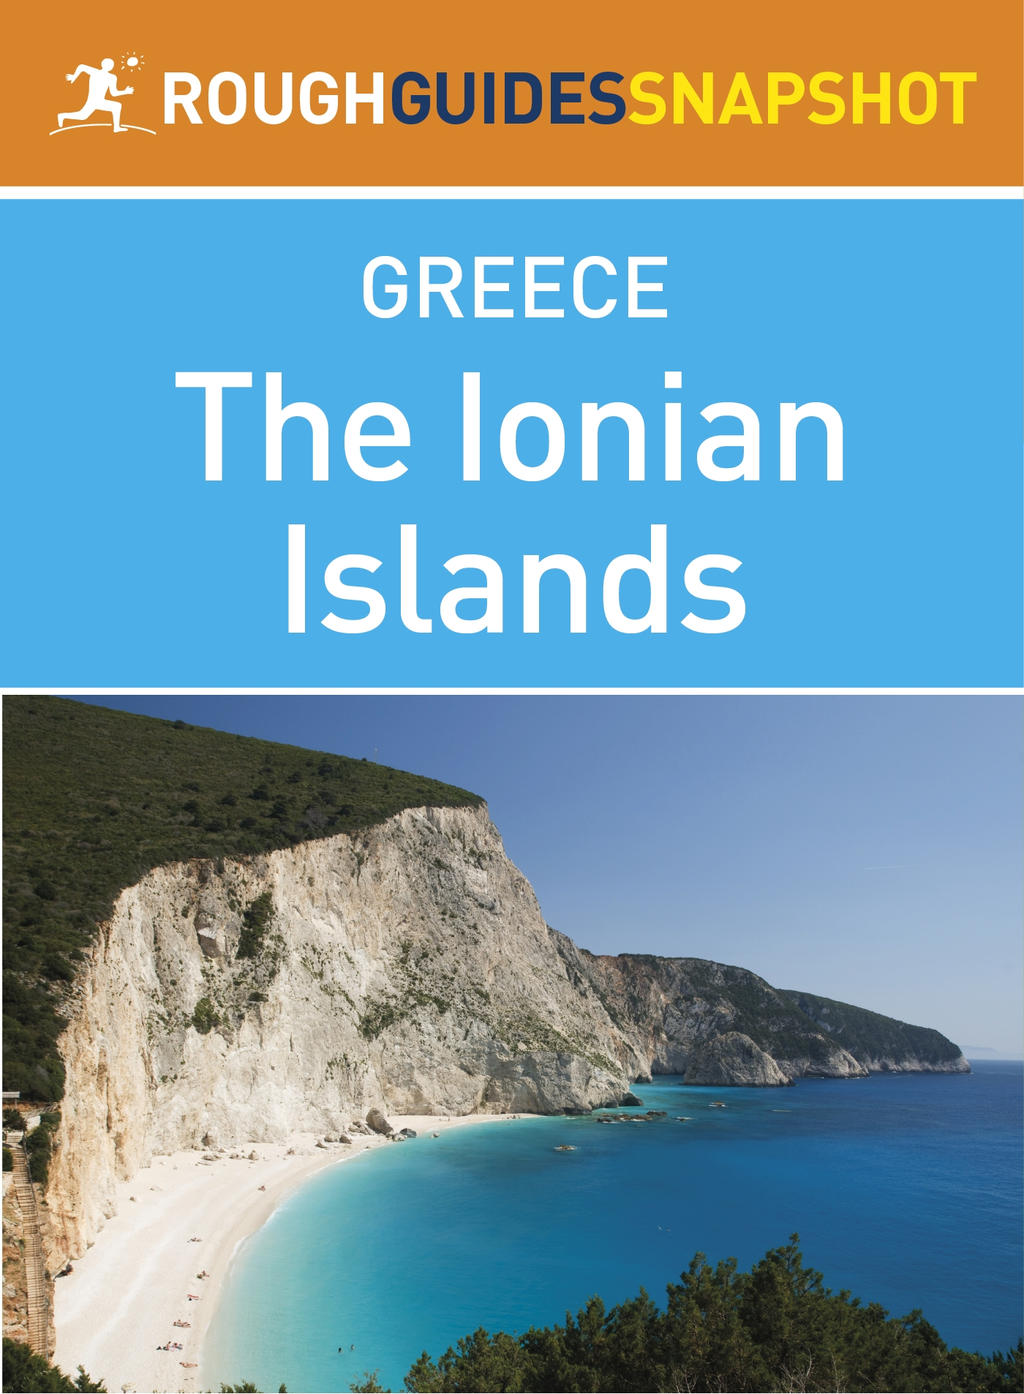 The Ionian Islands Rough Guides Snapshot Greece (includes Corfu,  Paxi (Paxos) and Andipaxi (Andipaxos),  Lefkadha,  Kefalonia (Cephalonia),  Ithaki (Itha